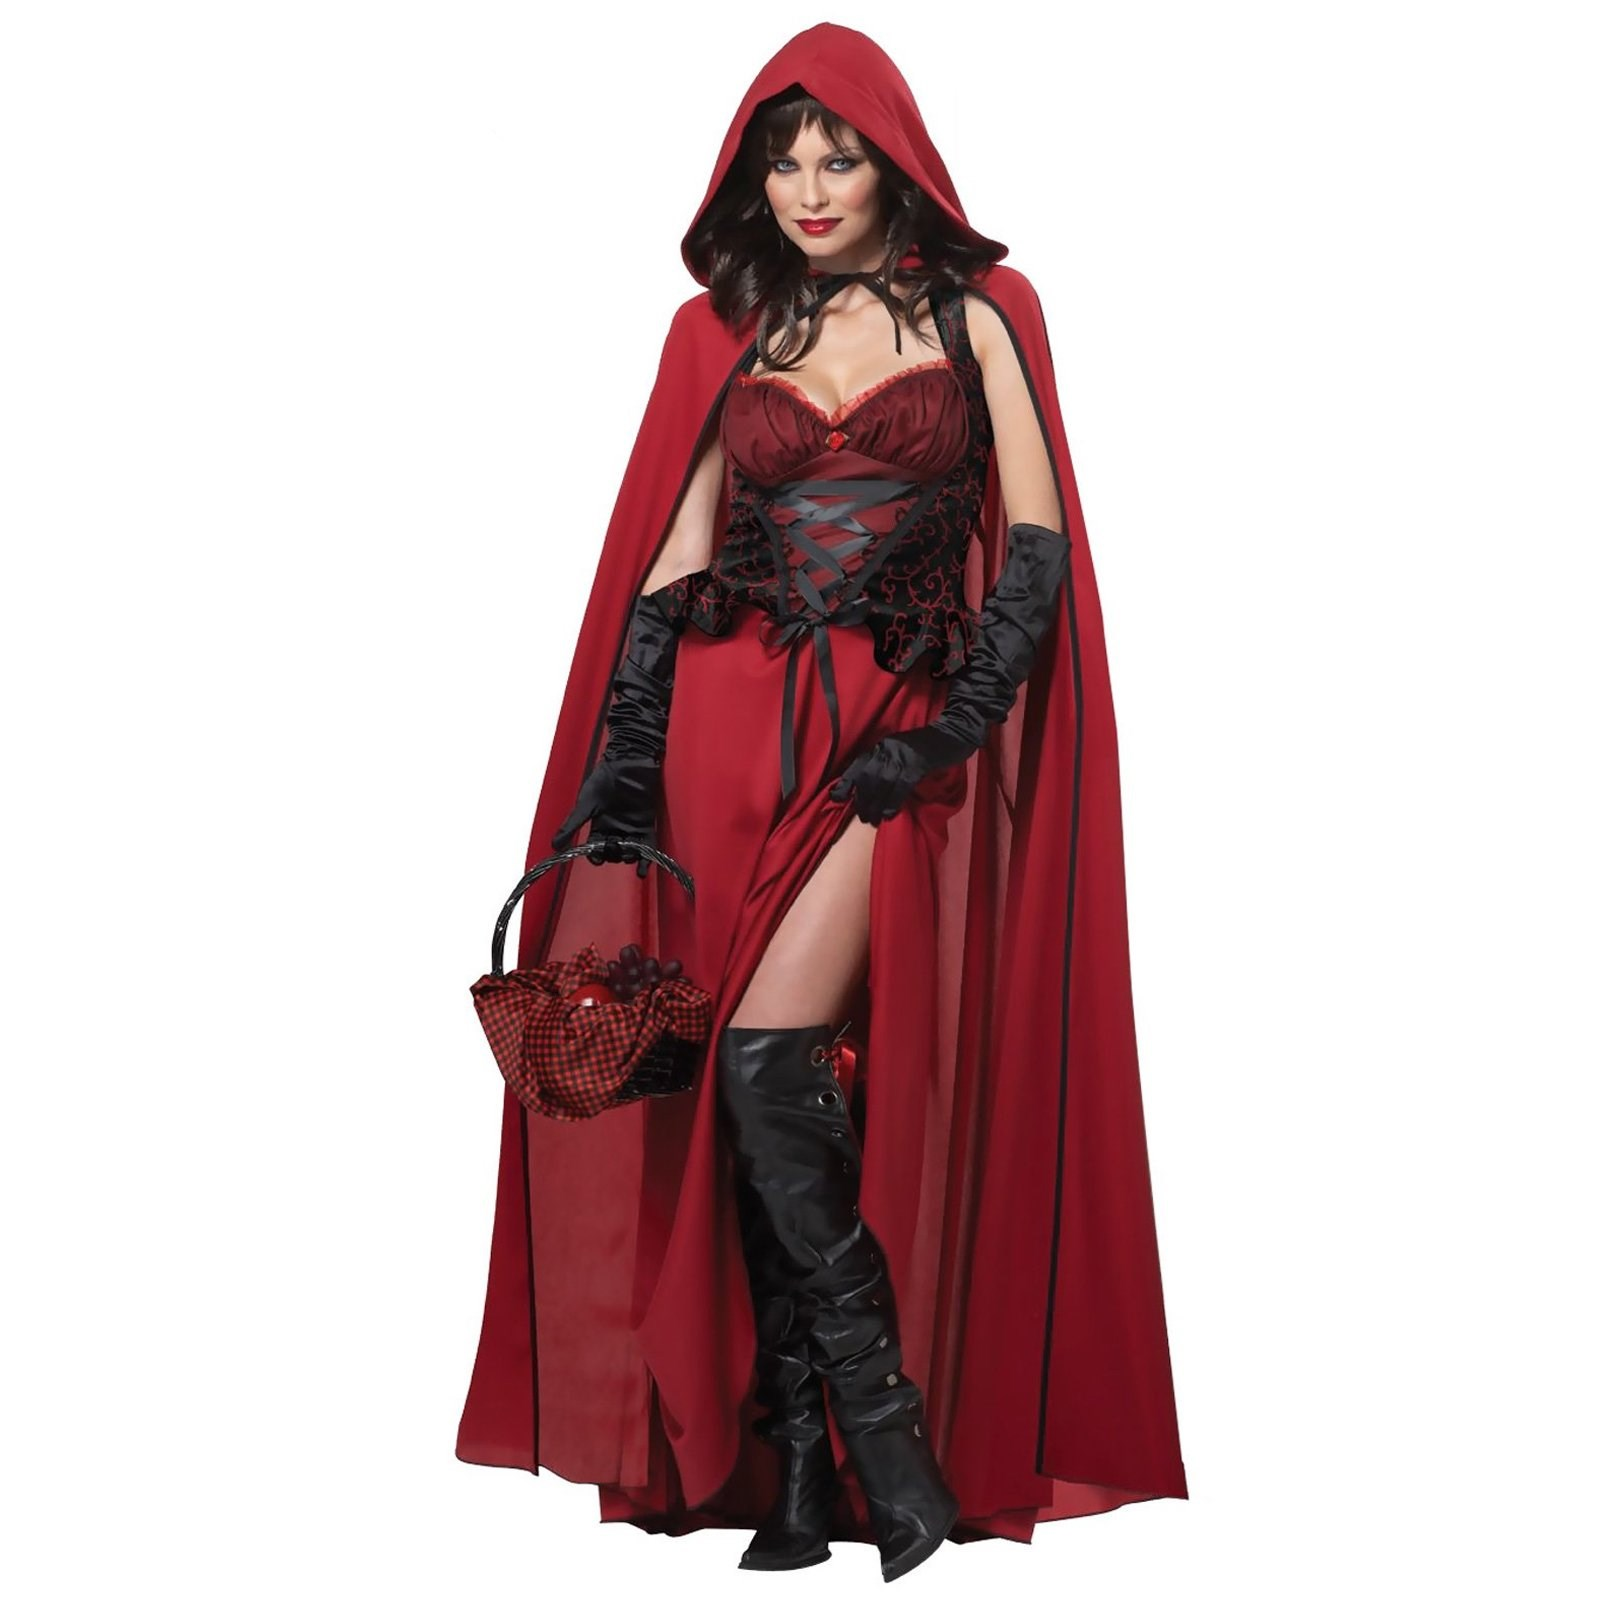 Dark Red Riding Hood Adult Costume